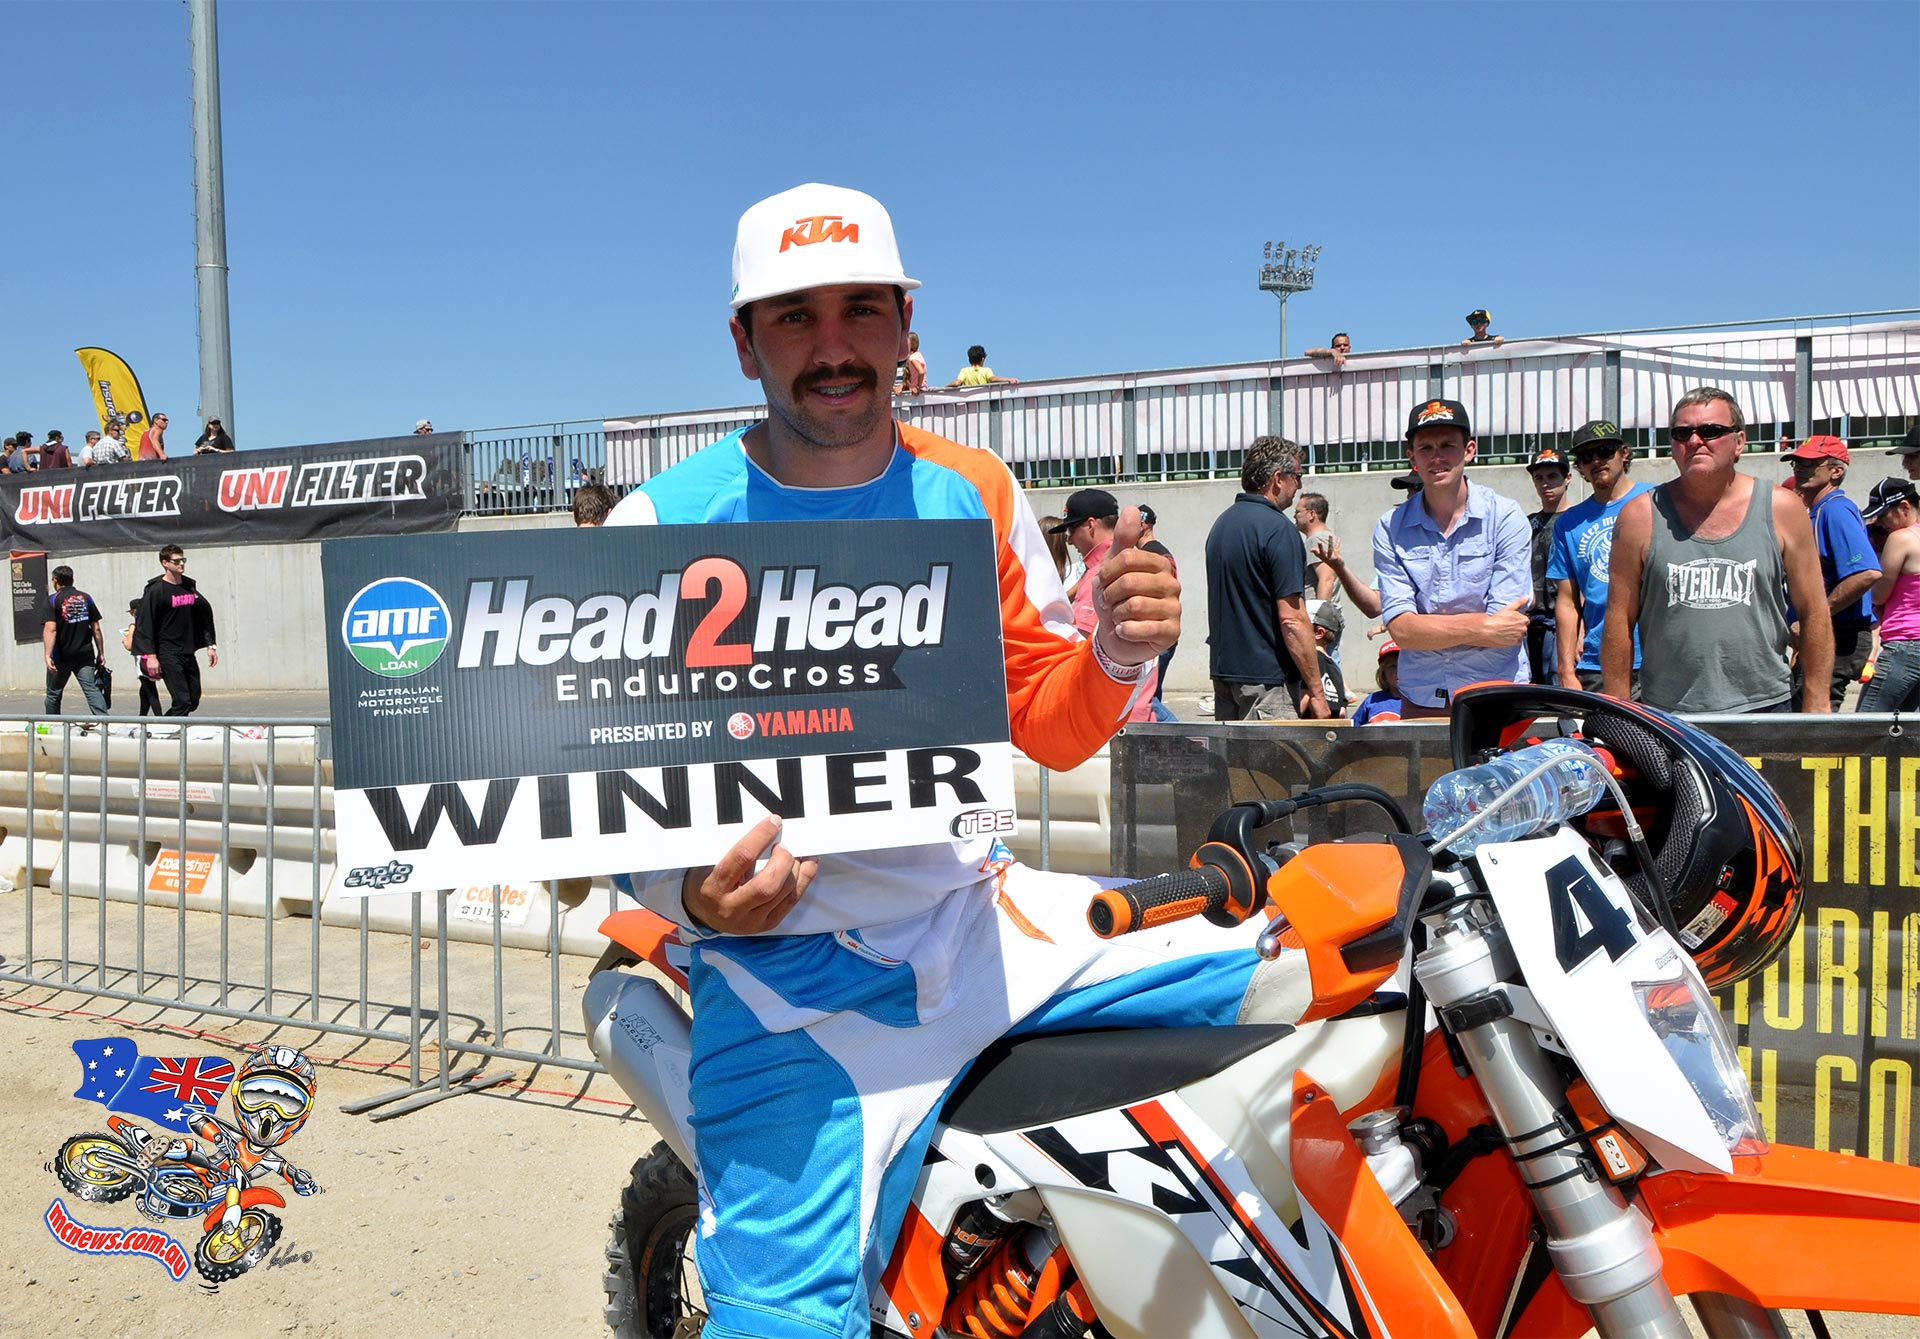 The very first Enduro Head 2 Head has been run and won at the Melbourne Moto Expo and to everyone's surprise former Pro motocrosser Tye Simmonds won Saturday's final